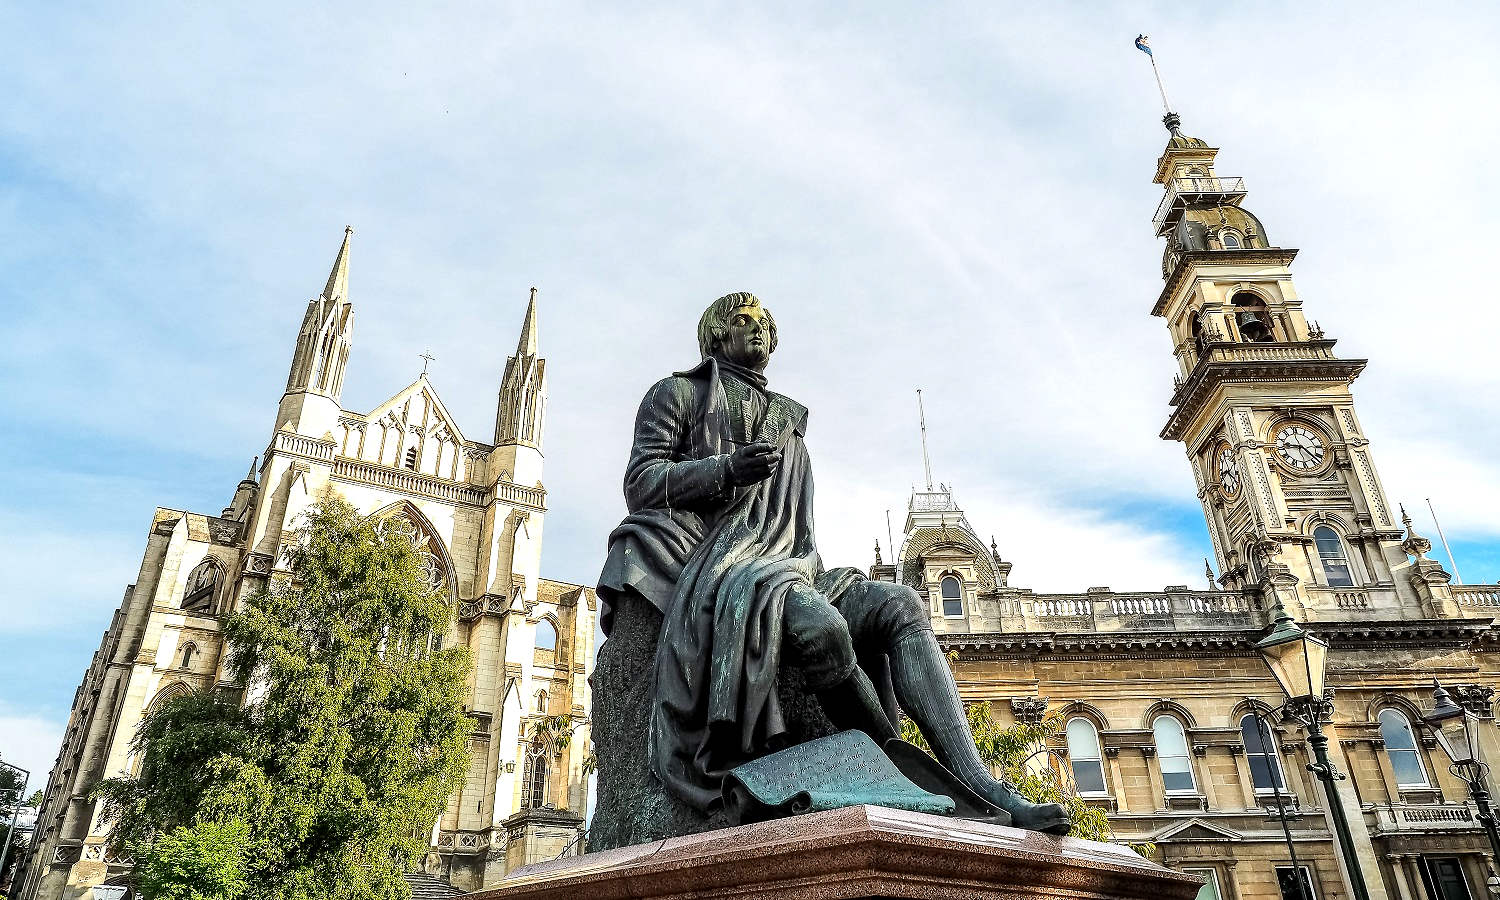 Robert Burns statue, Dunedin Town Hall and St. Paul's Cathedral